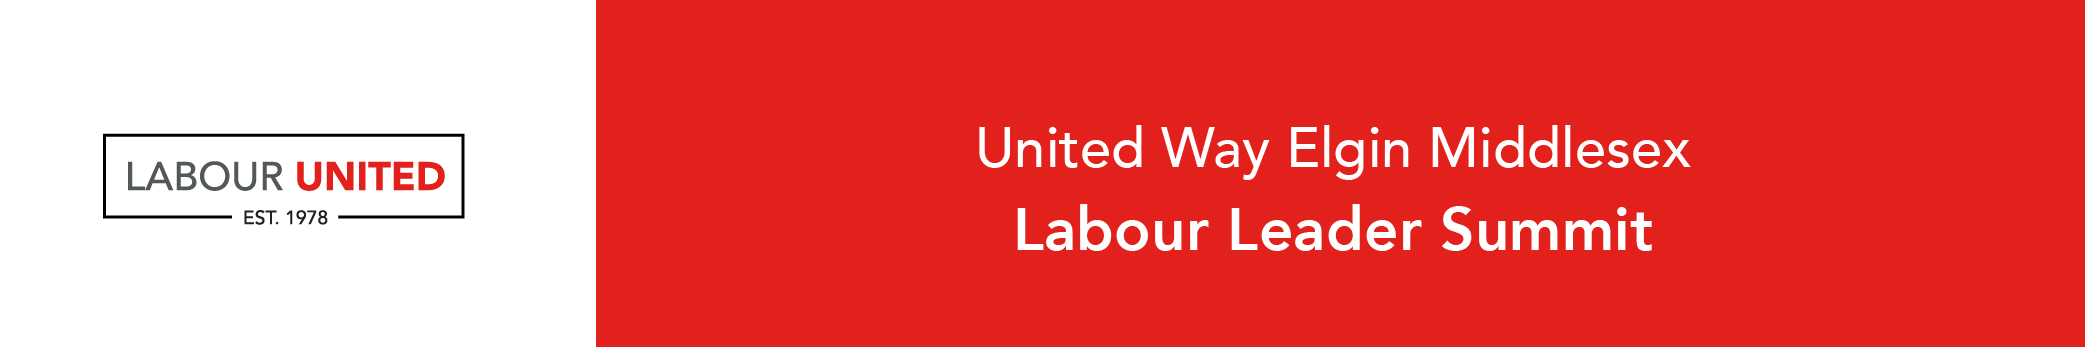 LabourUnited_Labour Leadership Summit_v2-01.jpg